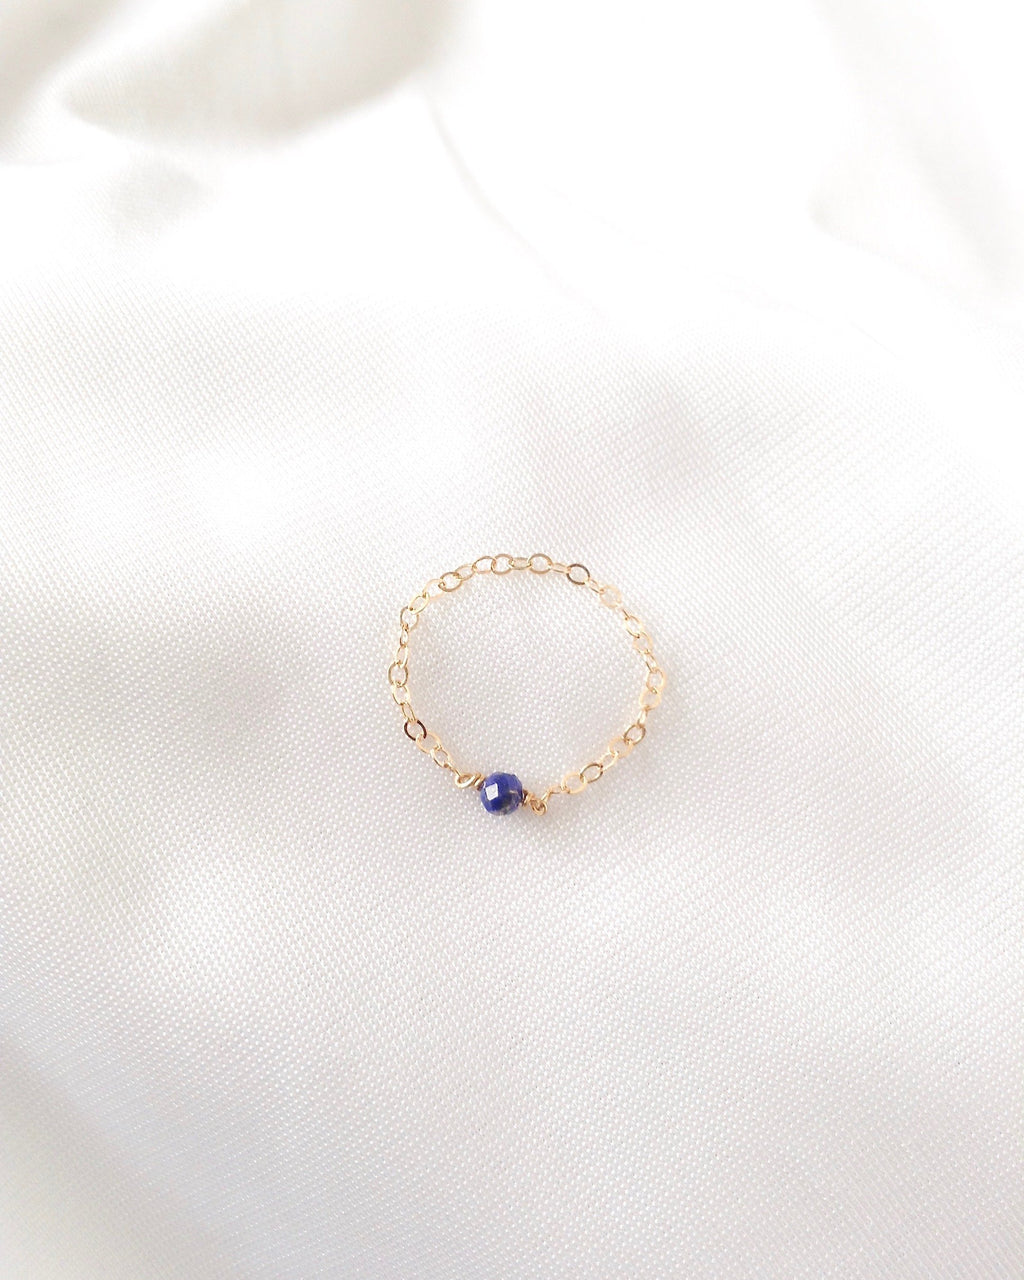 Genuine Lapis Lazuli Dainty Everyday Ring in Gold Filled or Sterling Silver | IB Jewelry